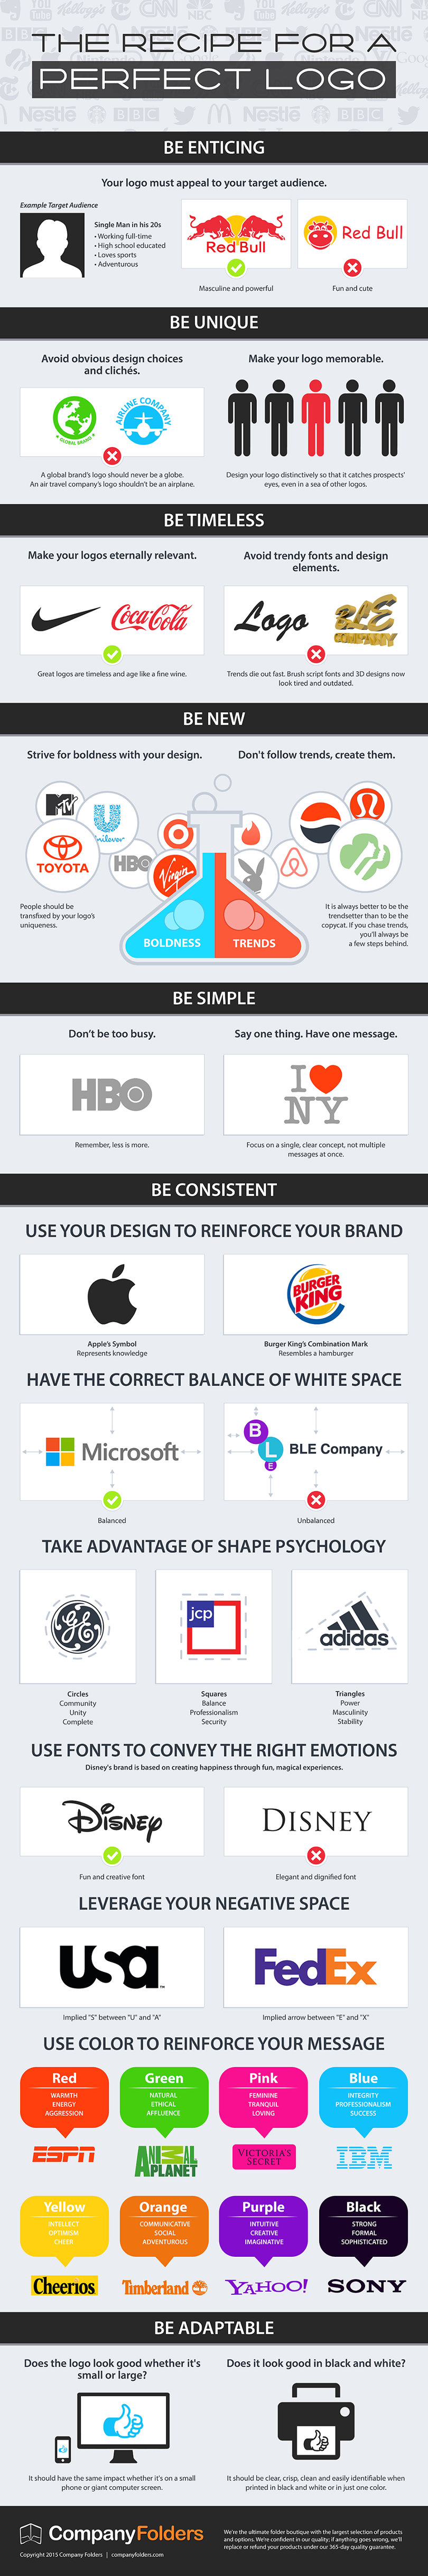 Logo design recipe - infographic